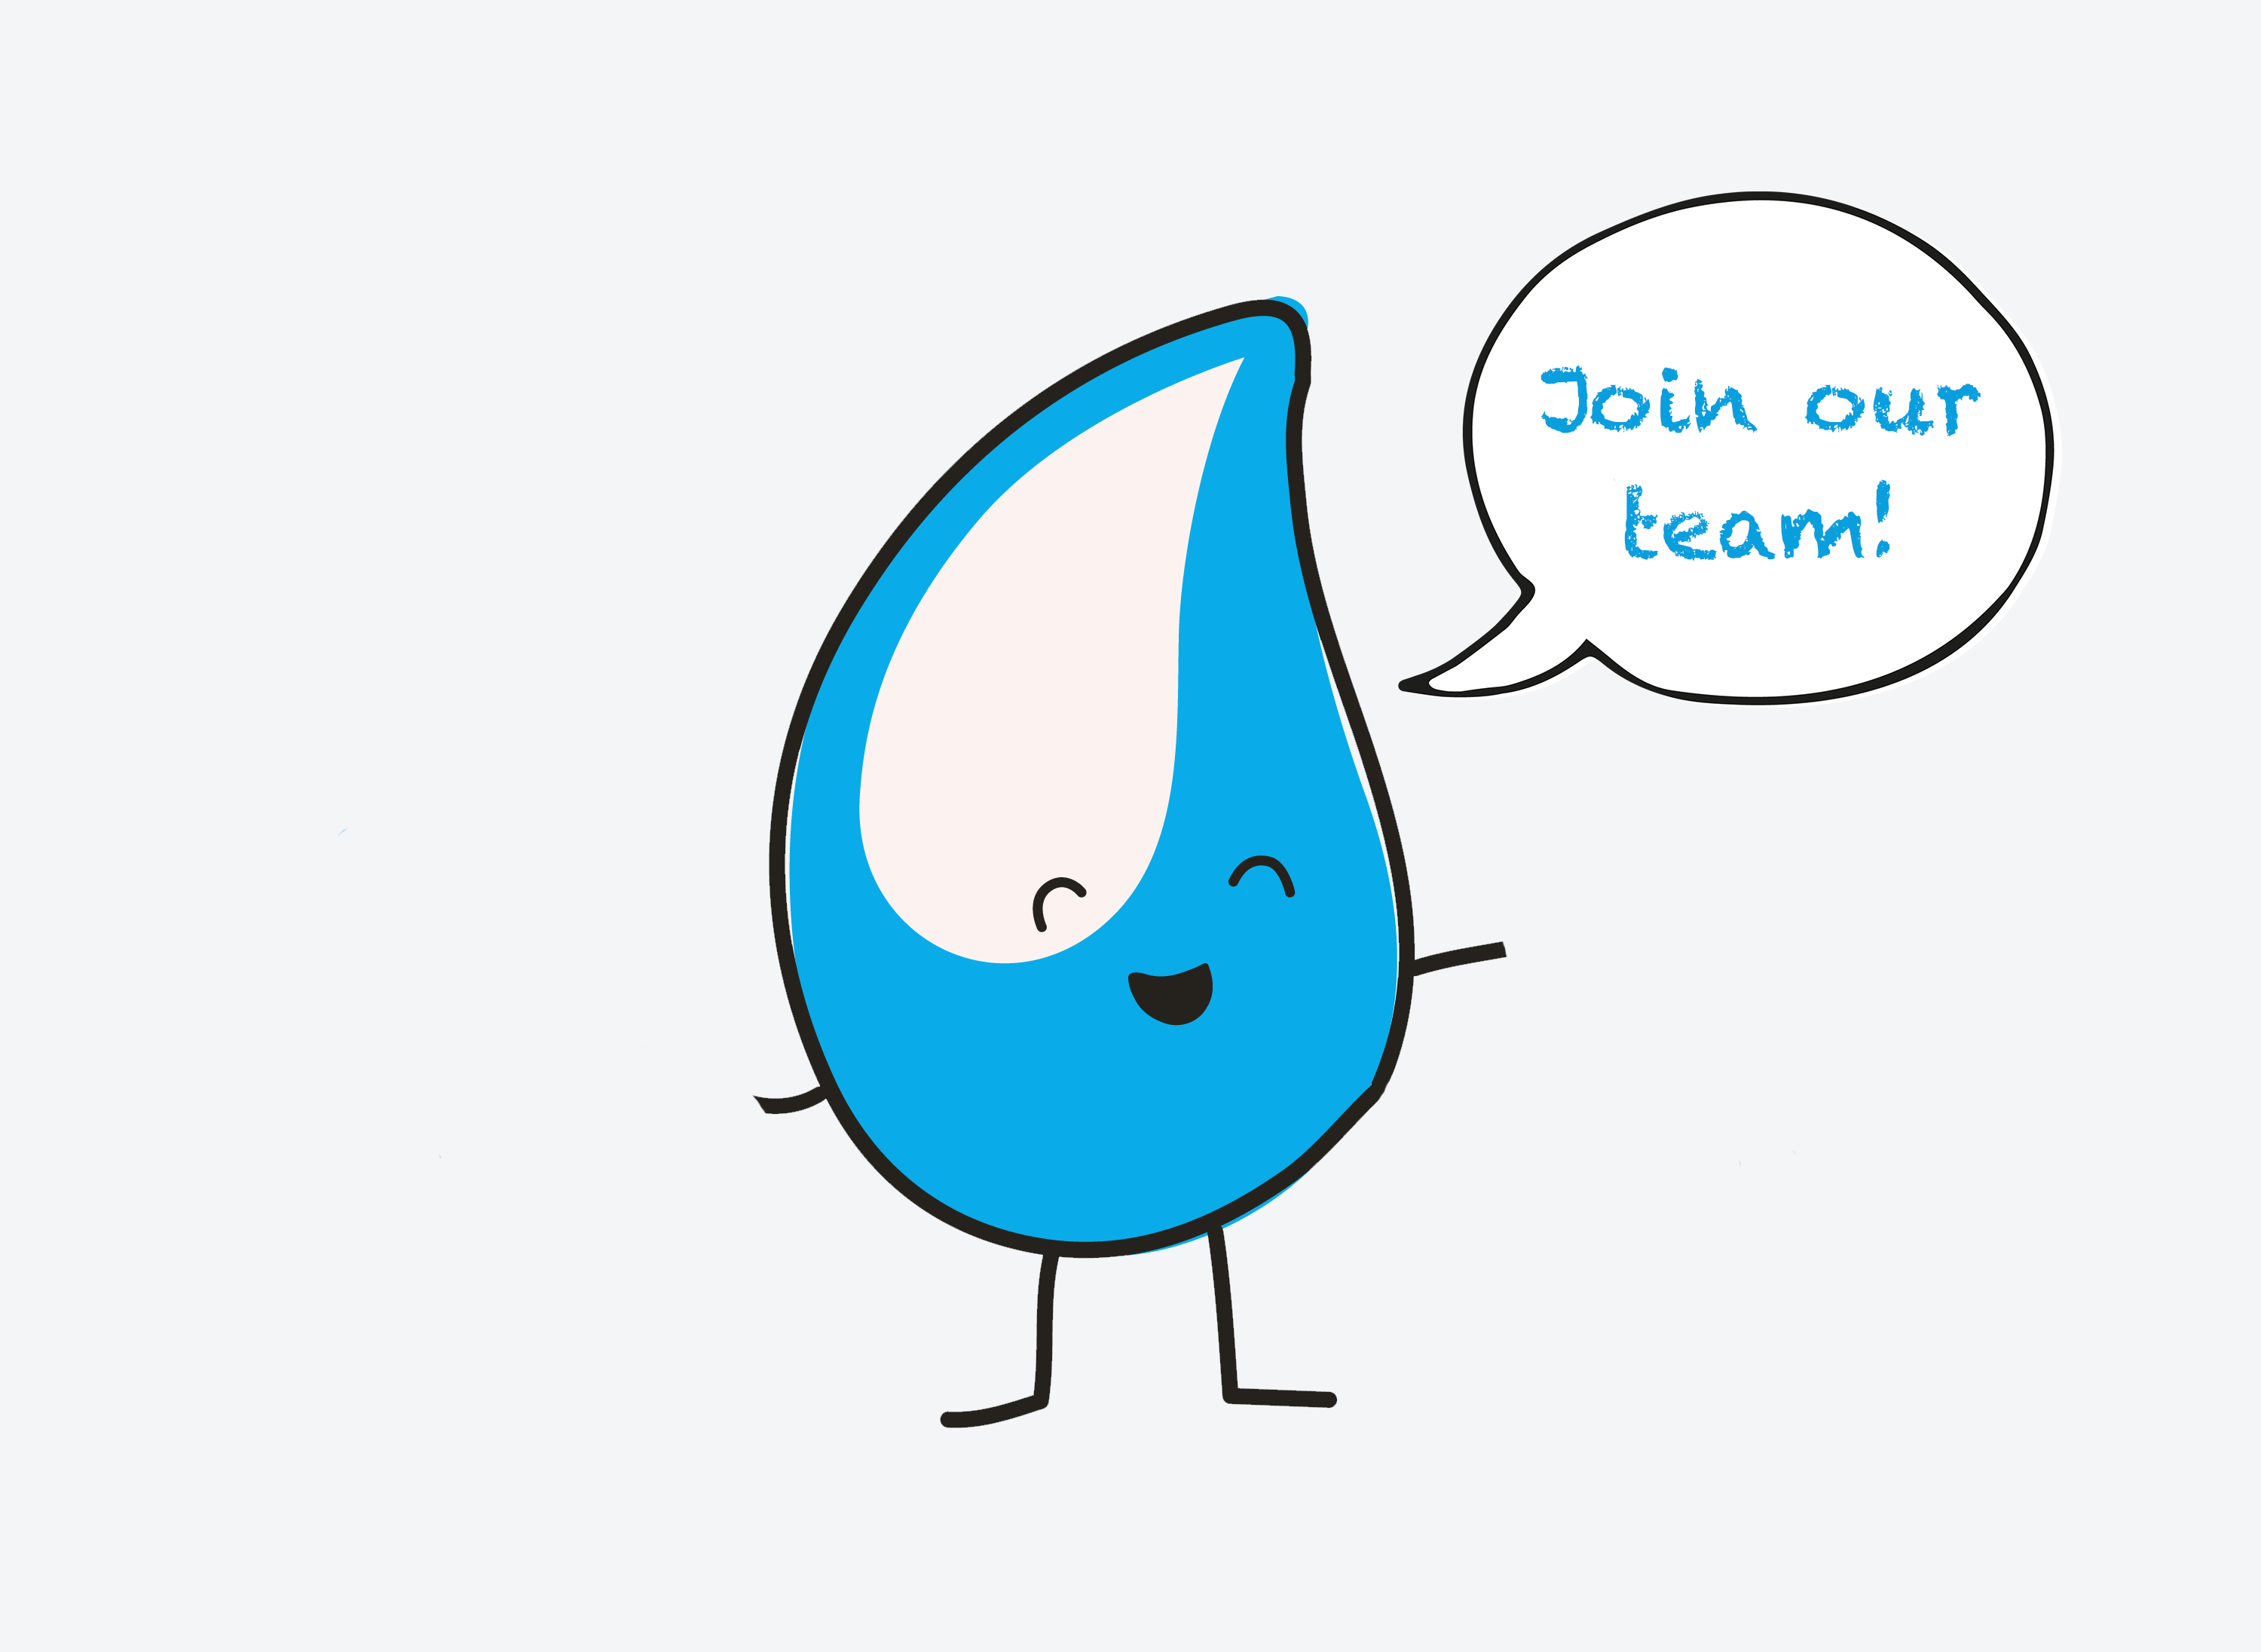 Walter the WaterAid drop - join our team